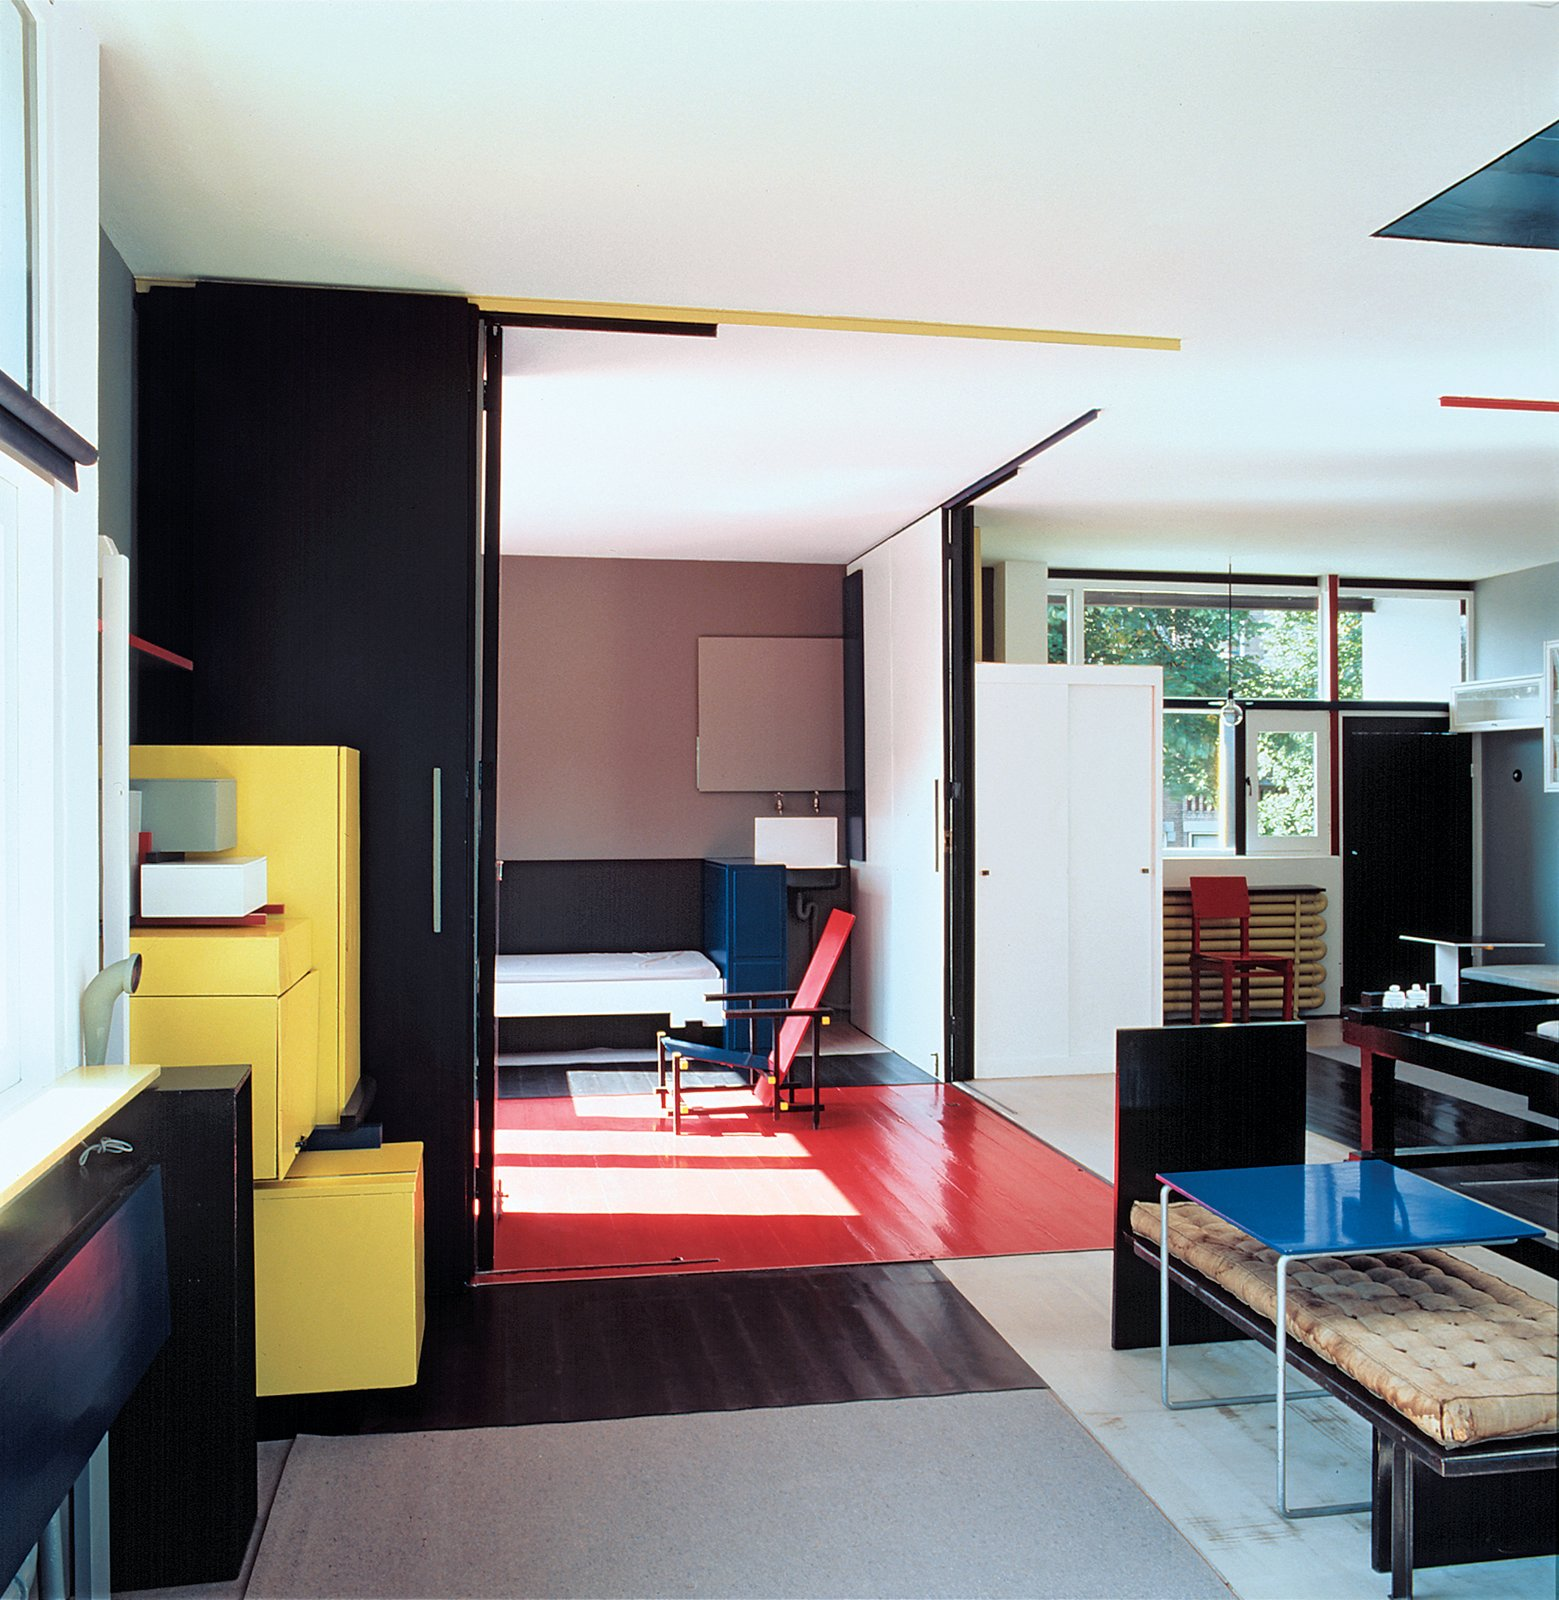 Color featured prominently in the Rietveld Schröder House, although Rietveld later banished it from his work. Mulder's restoration reinstated the yellow stacking cabinet on the left.  Photo 2 of 8 in Et tu, Bertus?